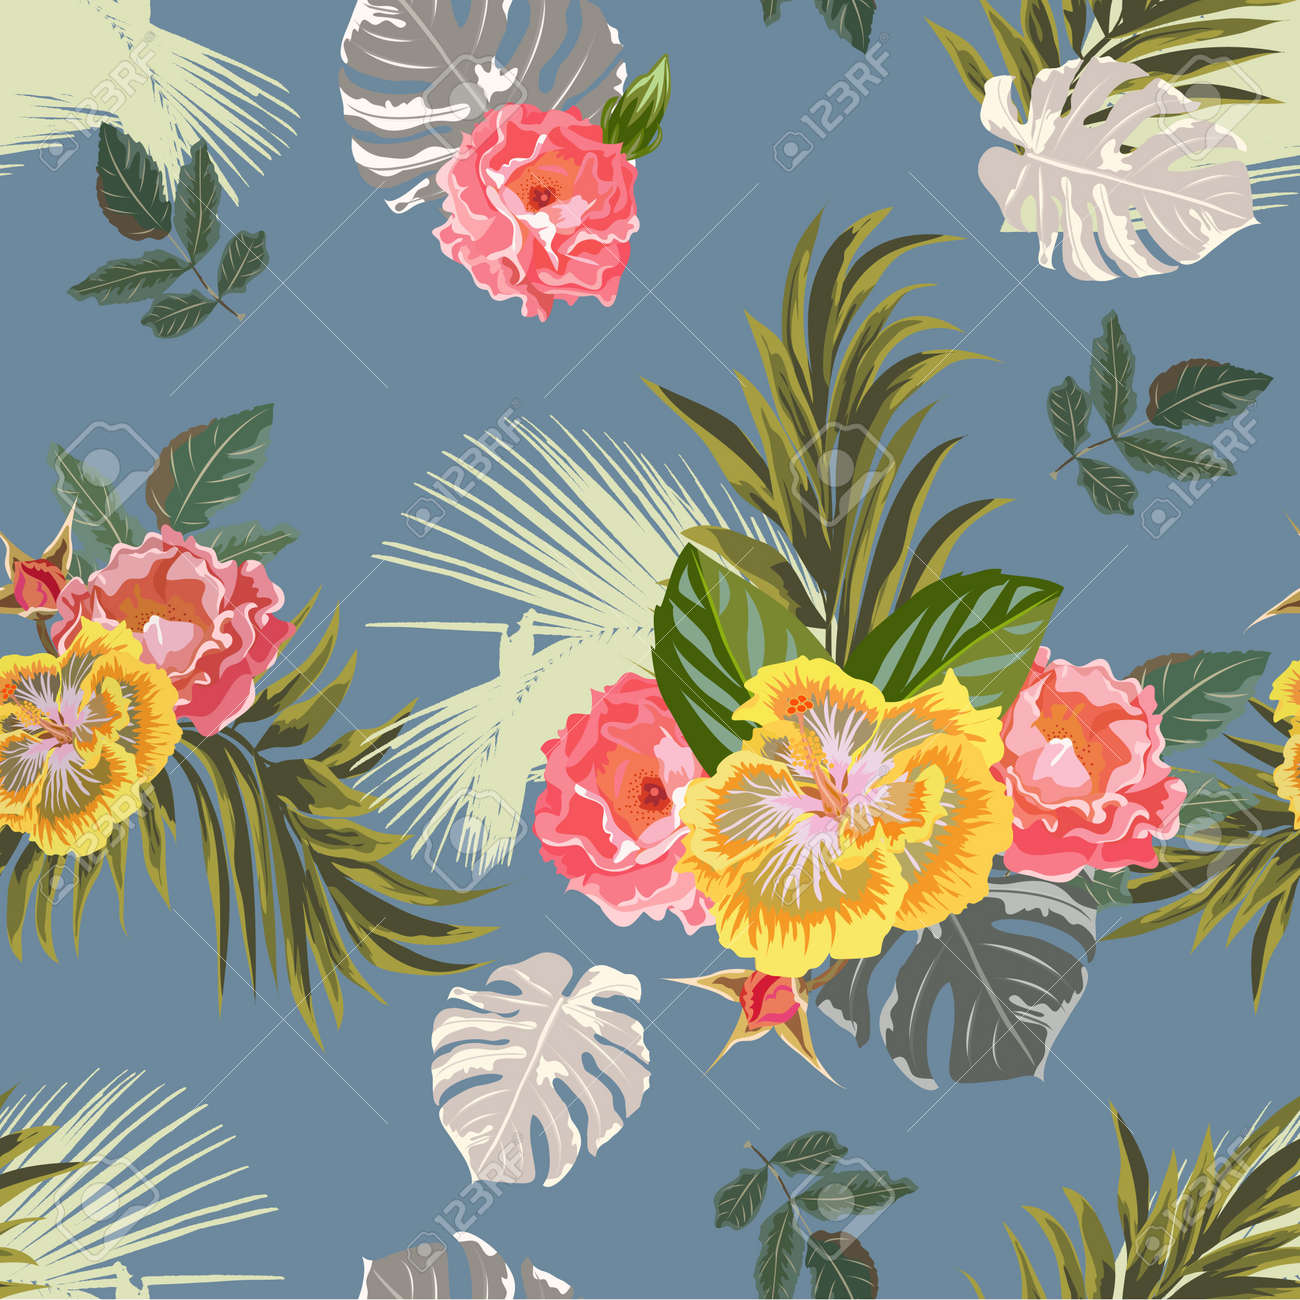 Tropical seamless floral pattern with hibiscus, roses and exotic leaves. Floral background for printing on fabric, clothing, home textiles, wallpaper, gift wrapping. - 156329610